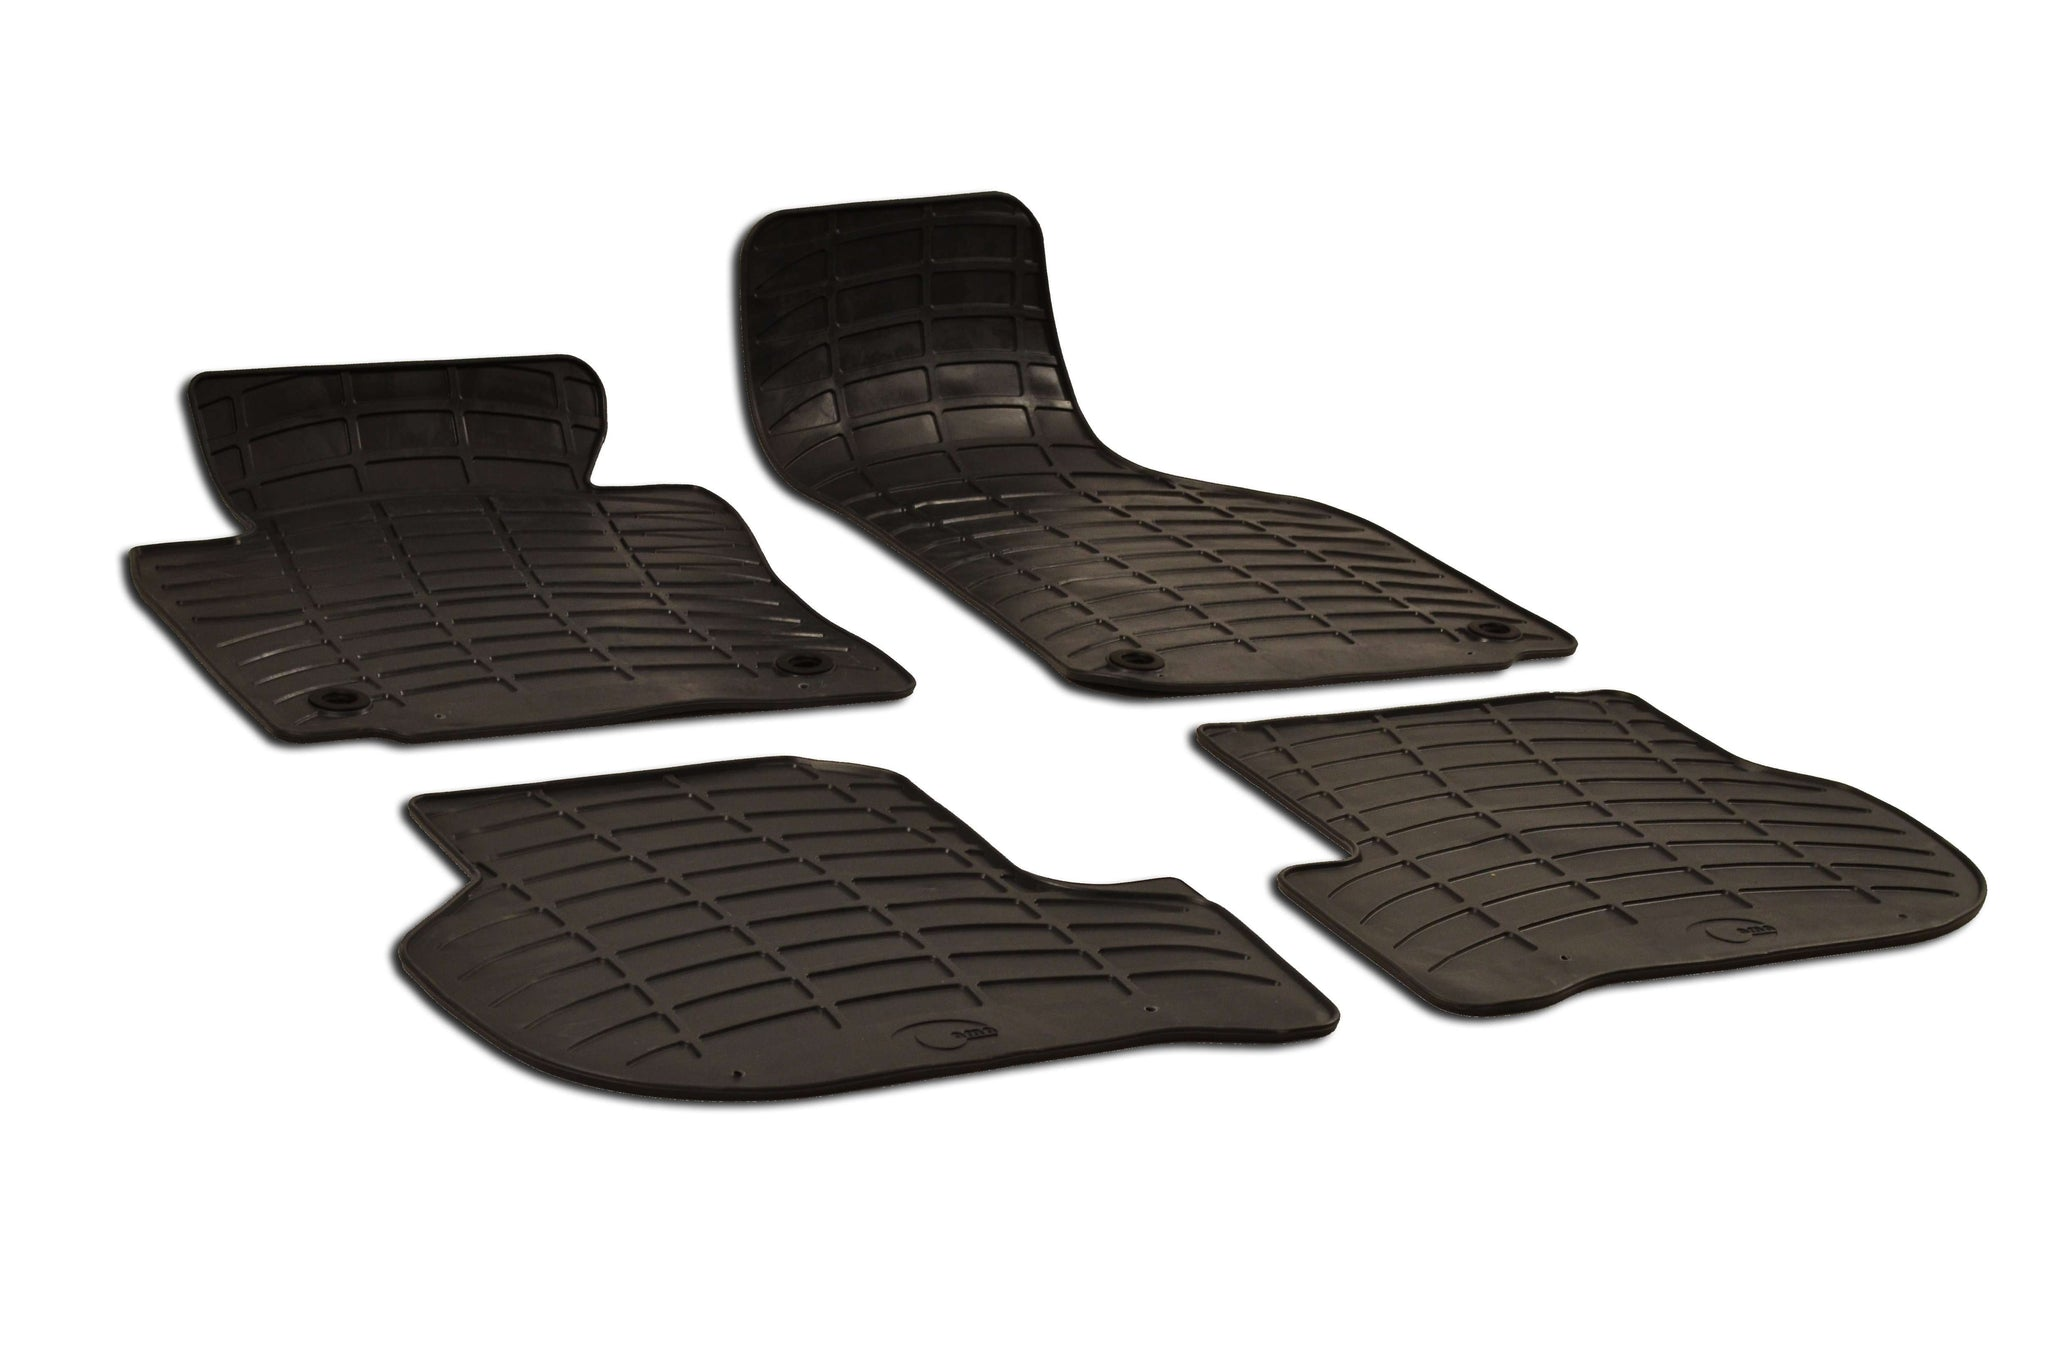 Volkswagen Golf  2004 Set of 4 Black Rubber OE Fit All Weather Car Floor Mats